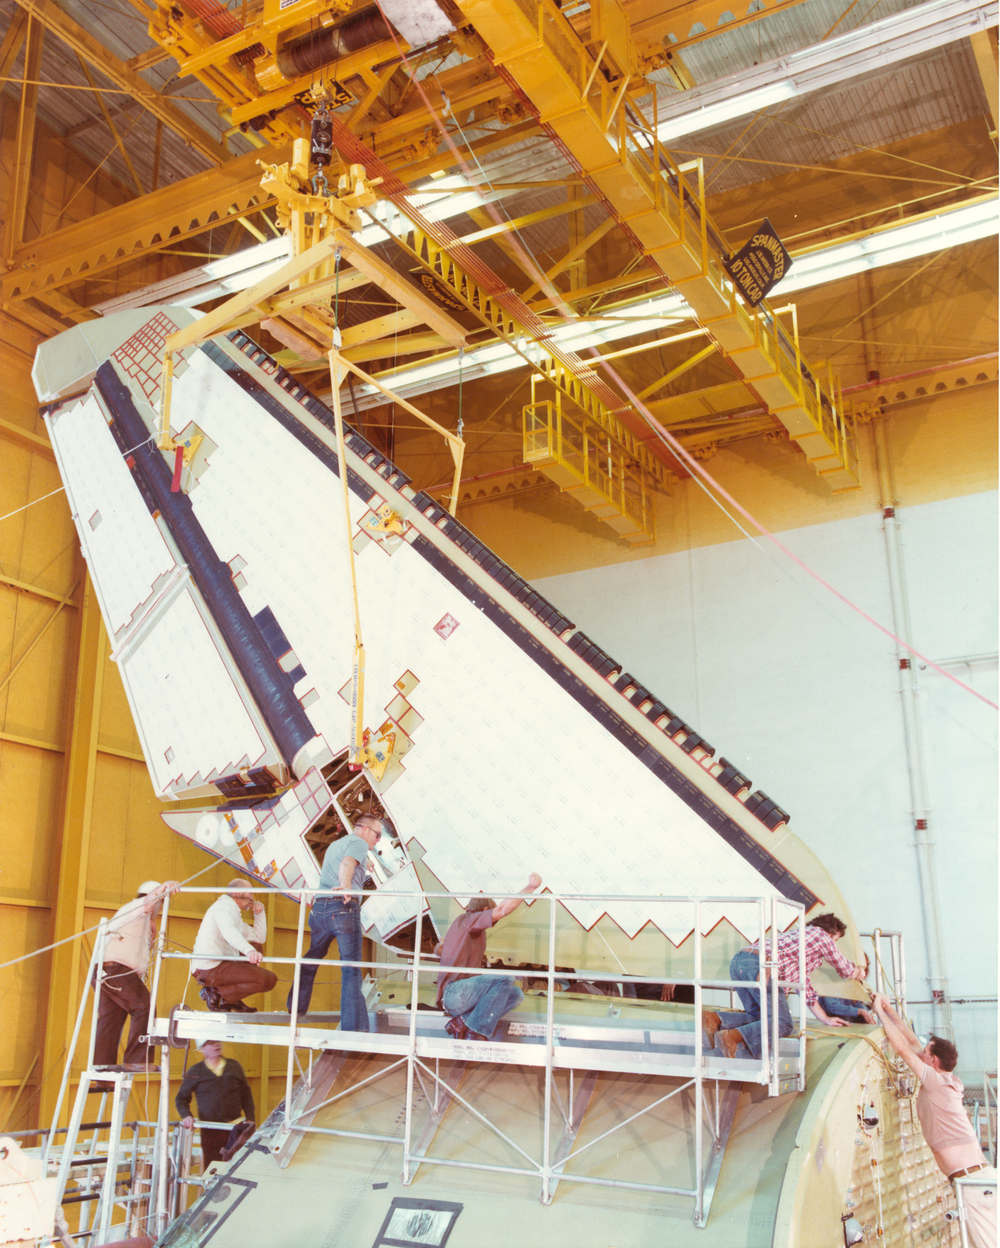 shuttle aft wing work at rockwell.jpg